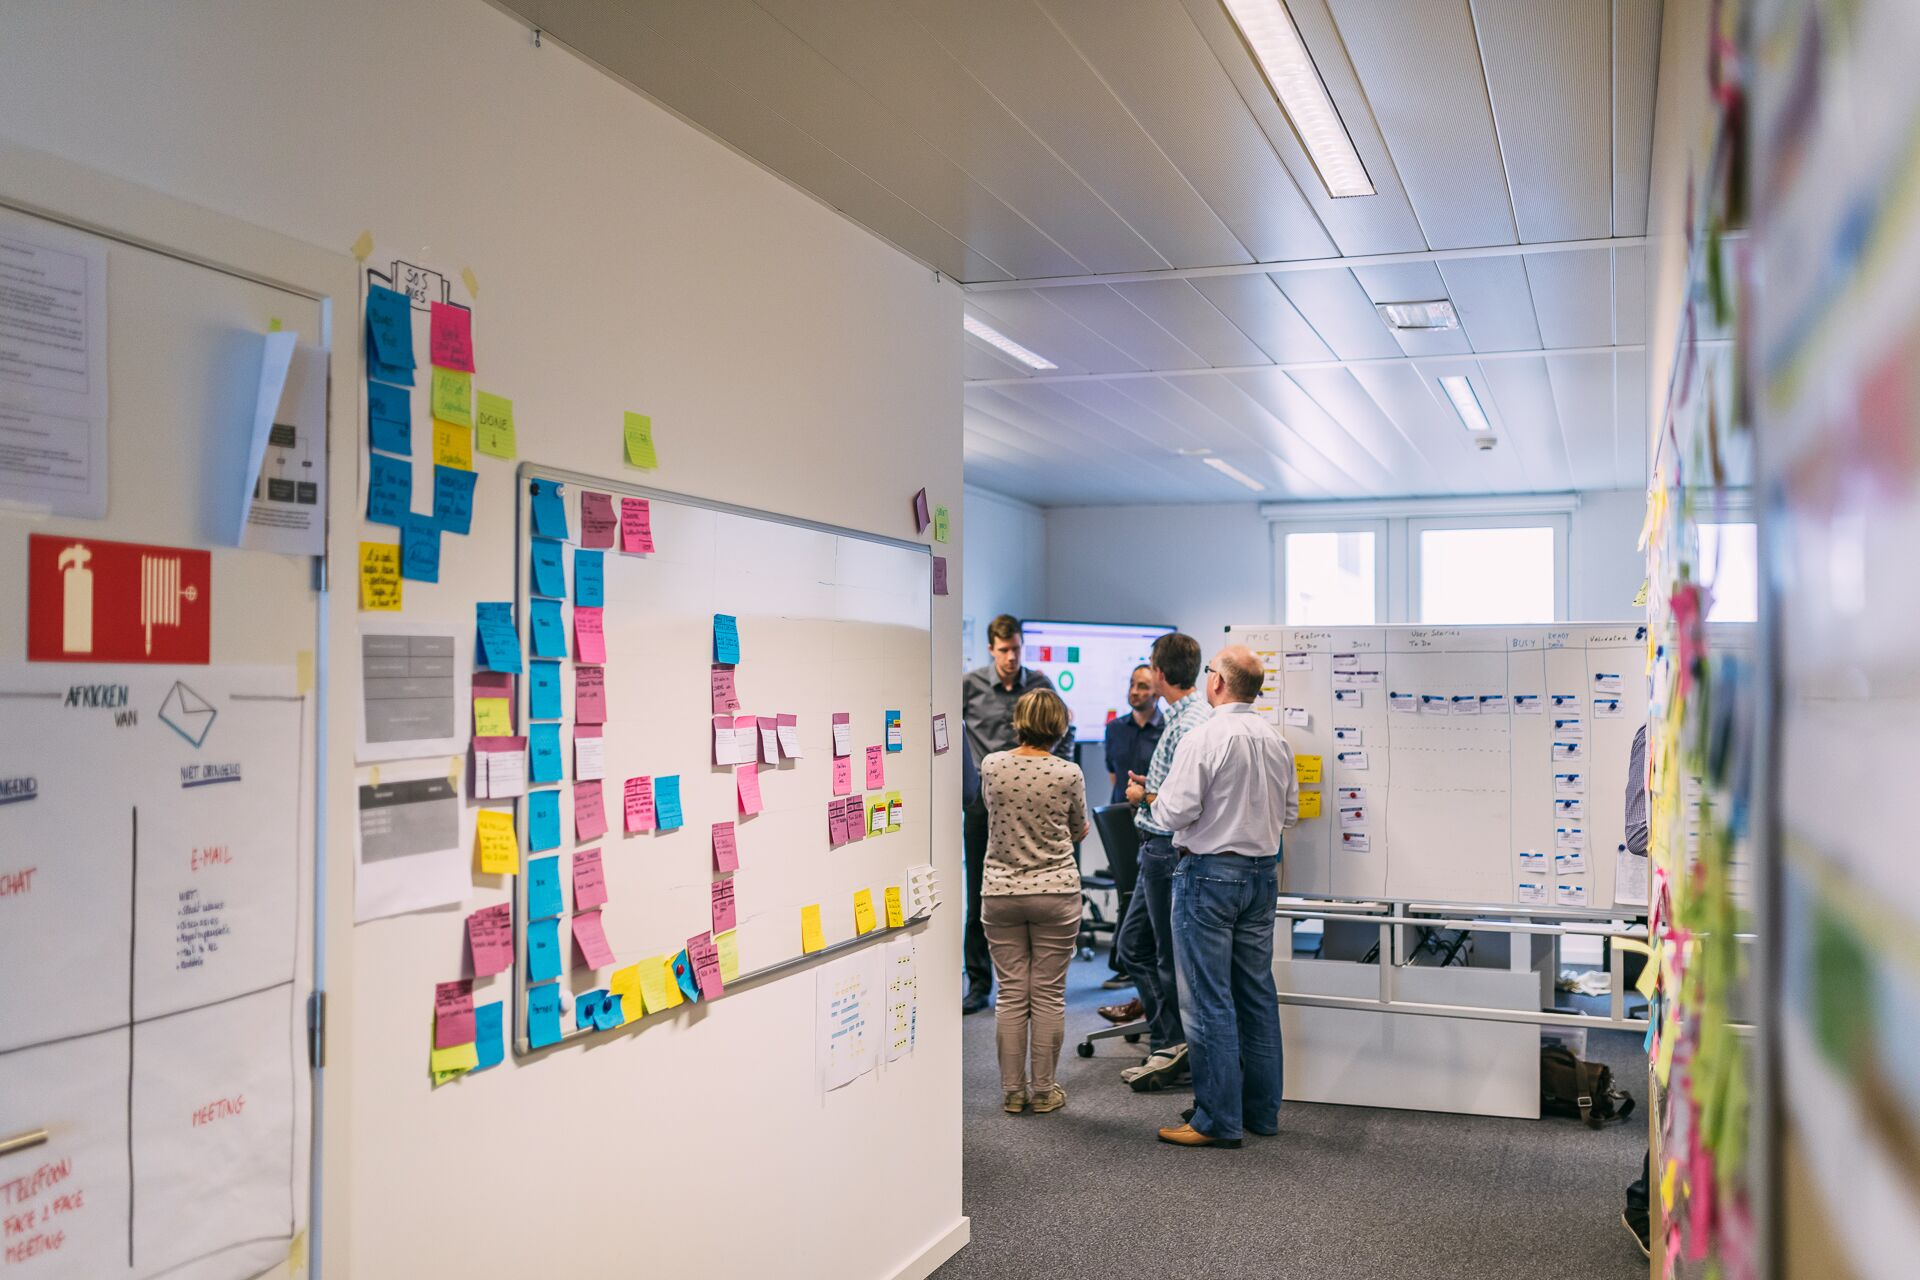 How to transform a classic company into an agile organization